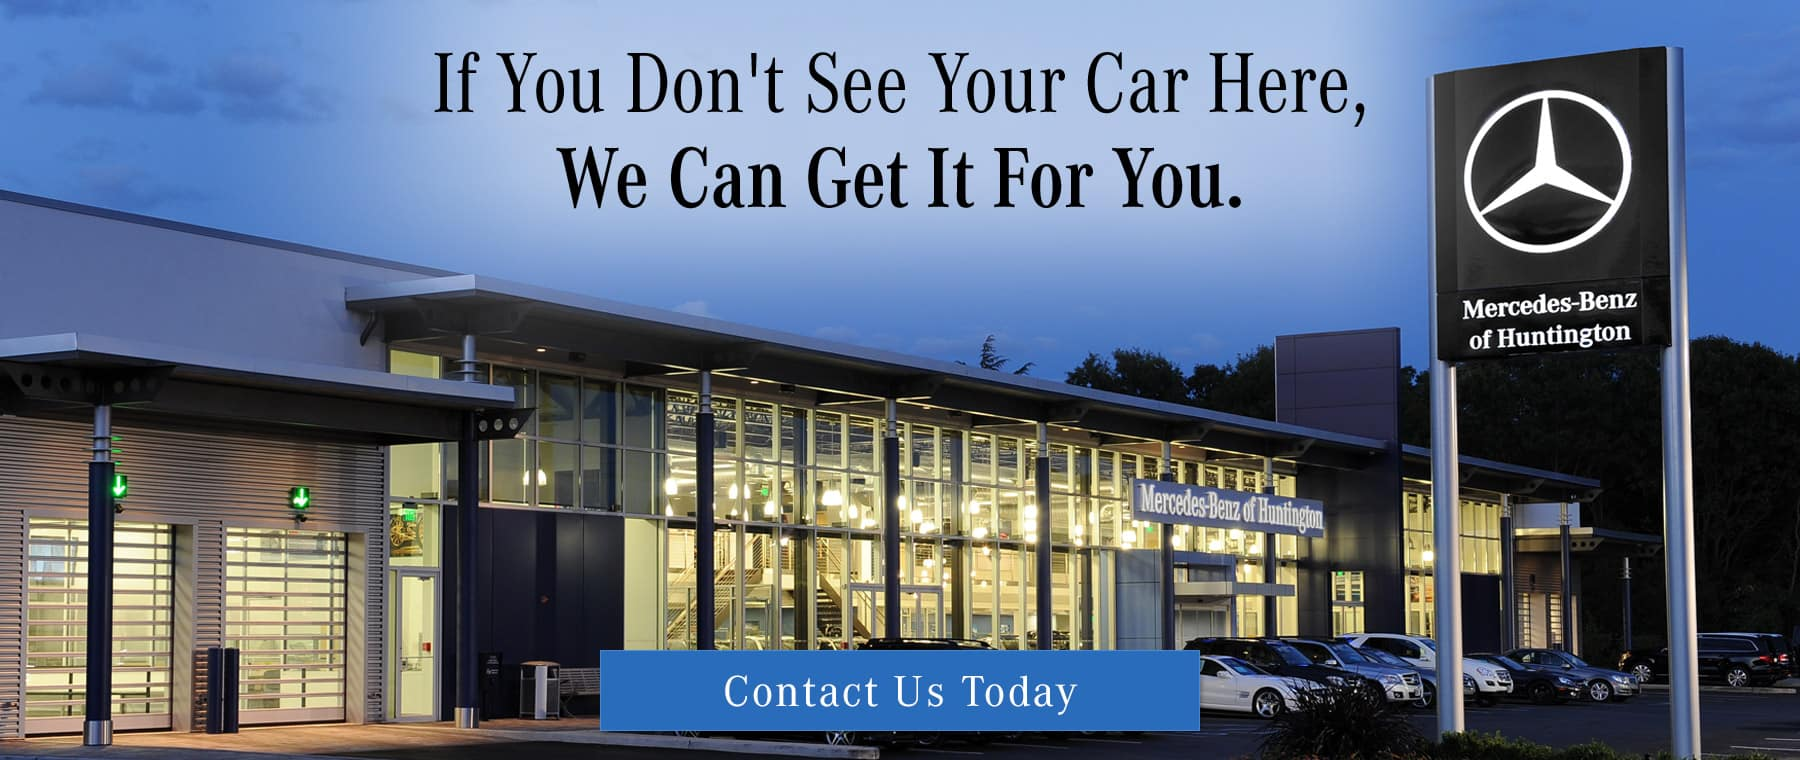 Homepage-Slider-MBH-Sub-Get-Car-For-You